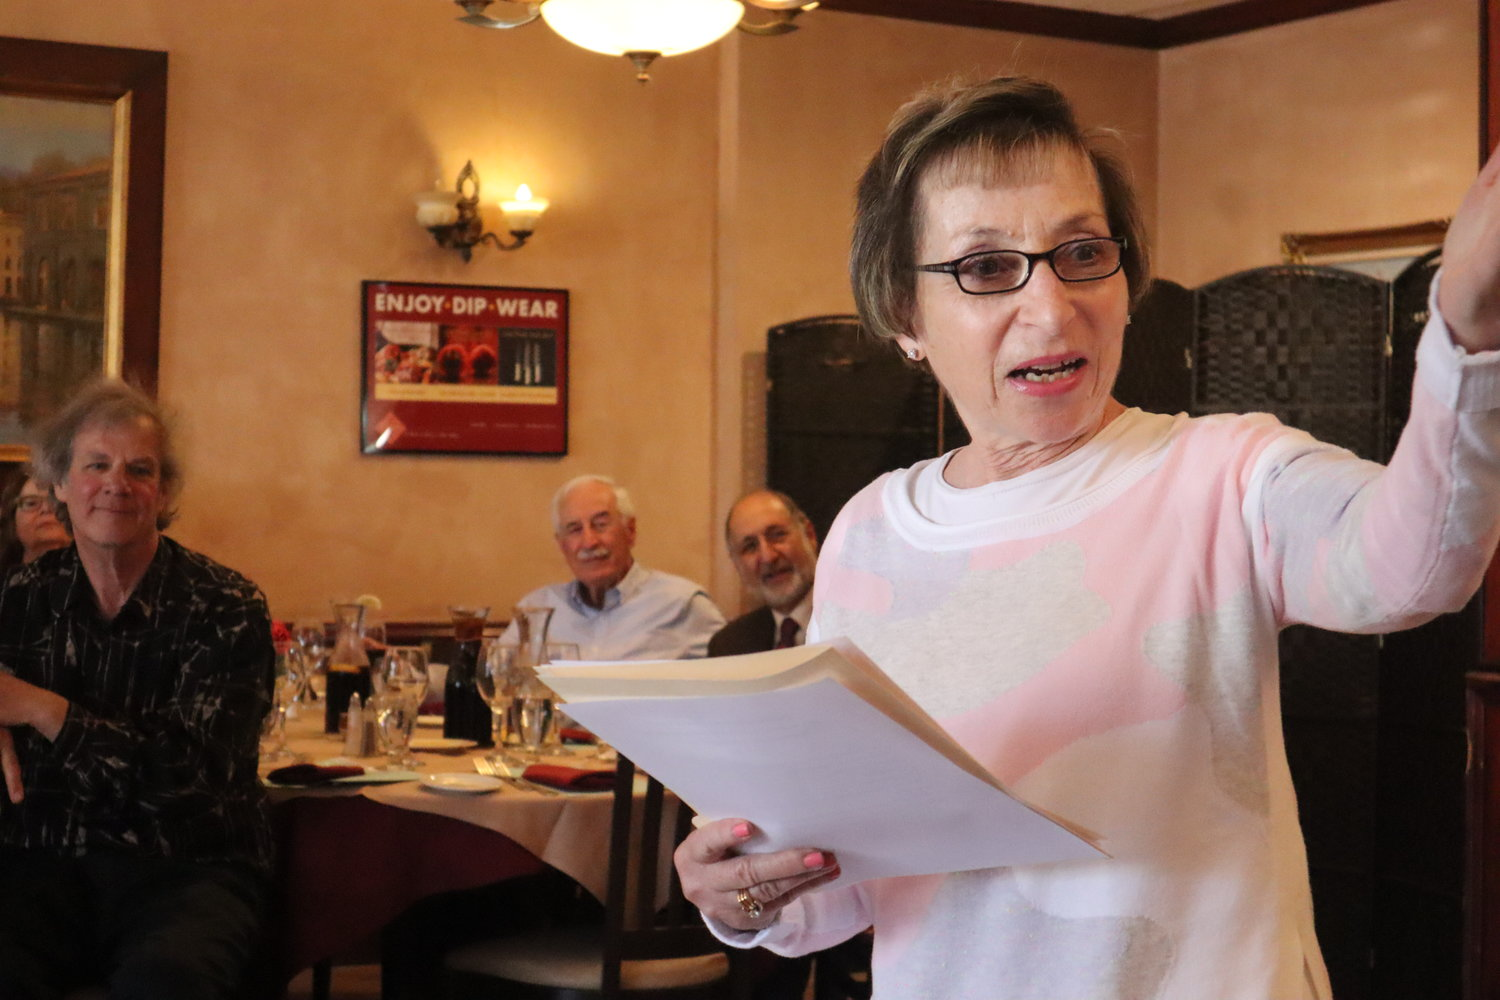 After 11 years as the BMRTA president, Sharon Wisla was re-elected to the position at the association's luncheon. The group met at Elisa's Ristorante, her favorite local eatery.